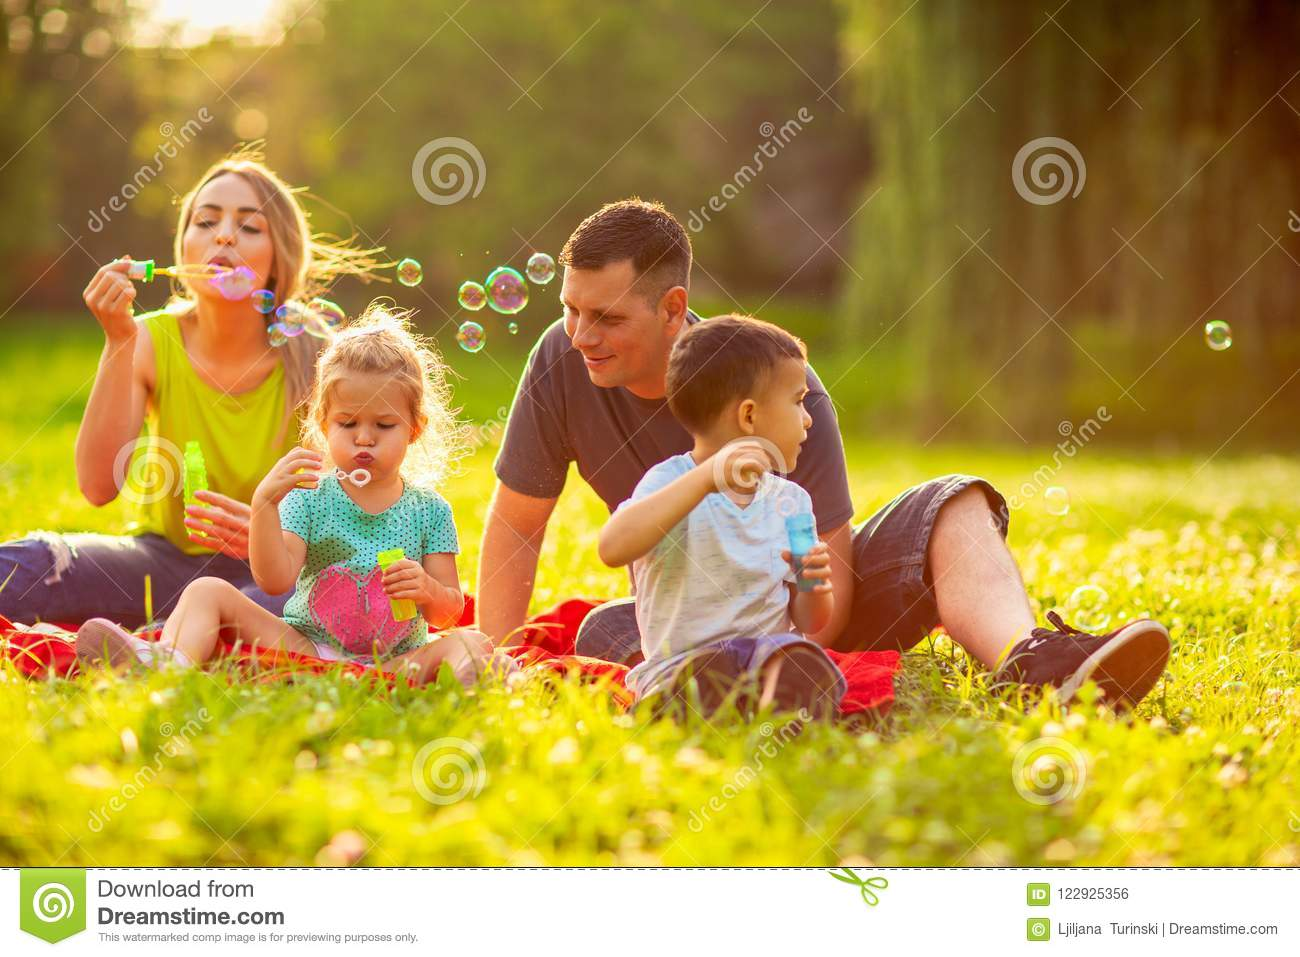 Happy Family In The Park- Family With Children Blow Soap